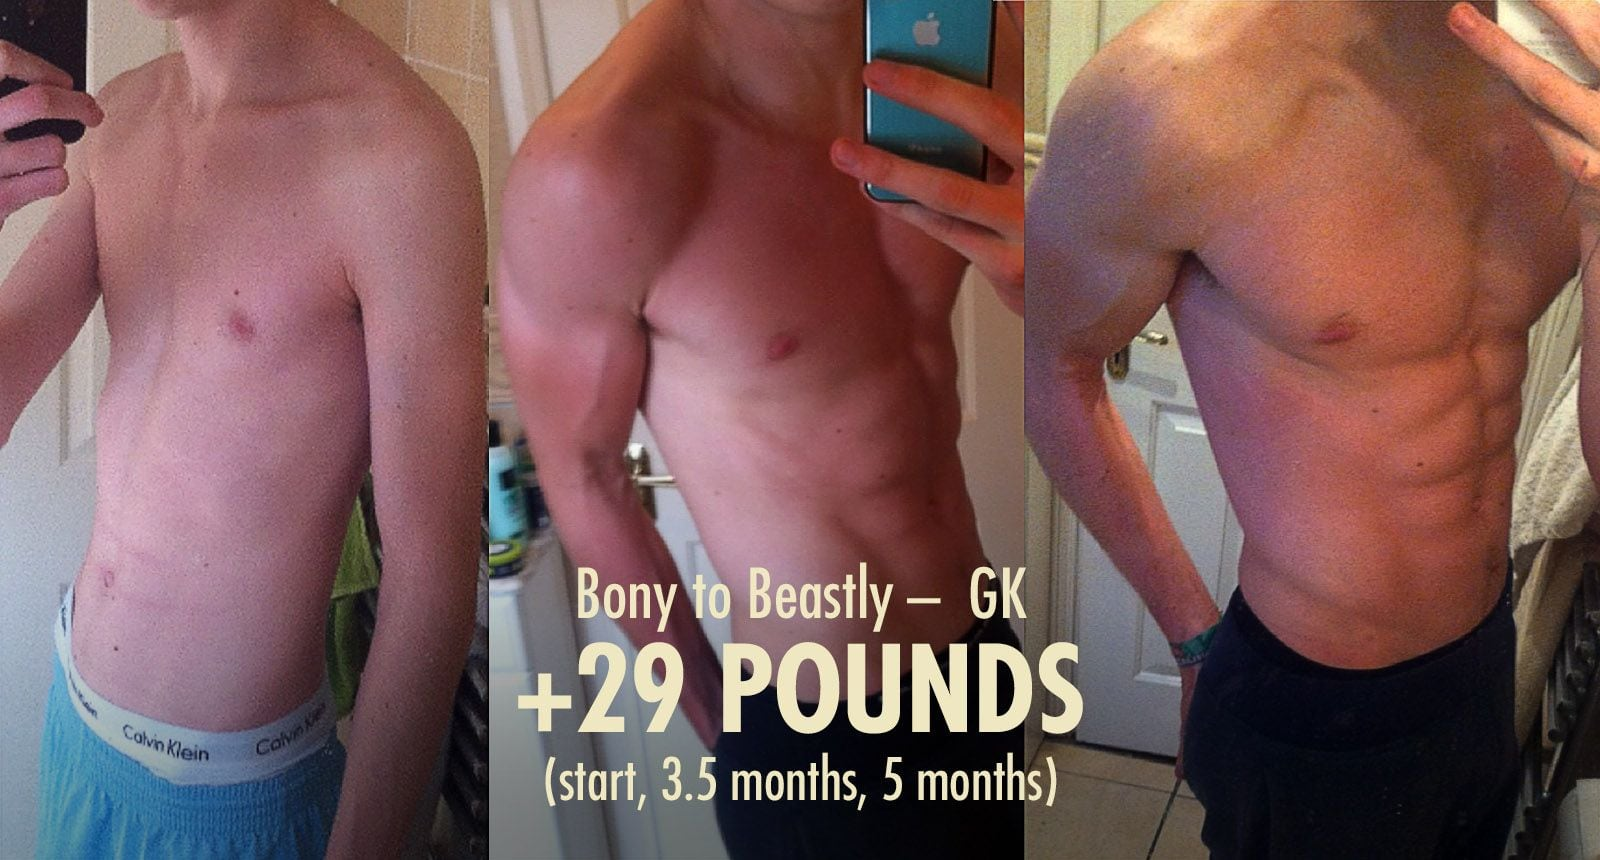 Before and after photo showing the results from doing Bony to Beastly compared to StrongLifts 5x5.